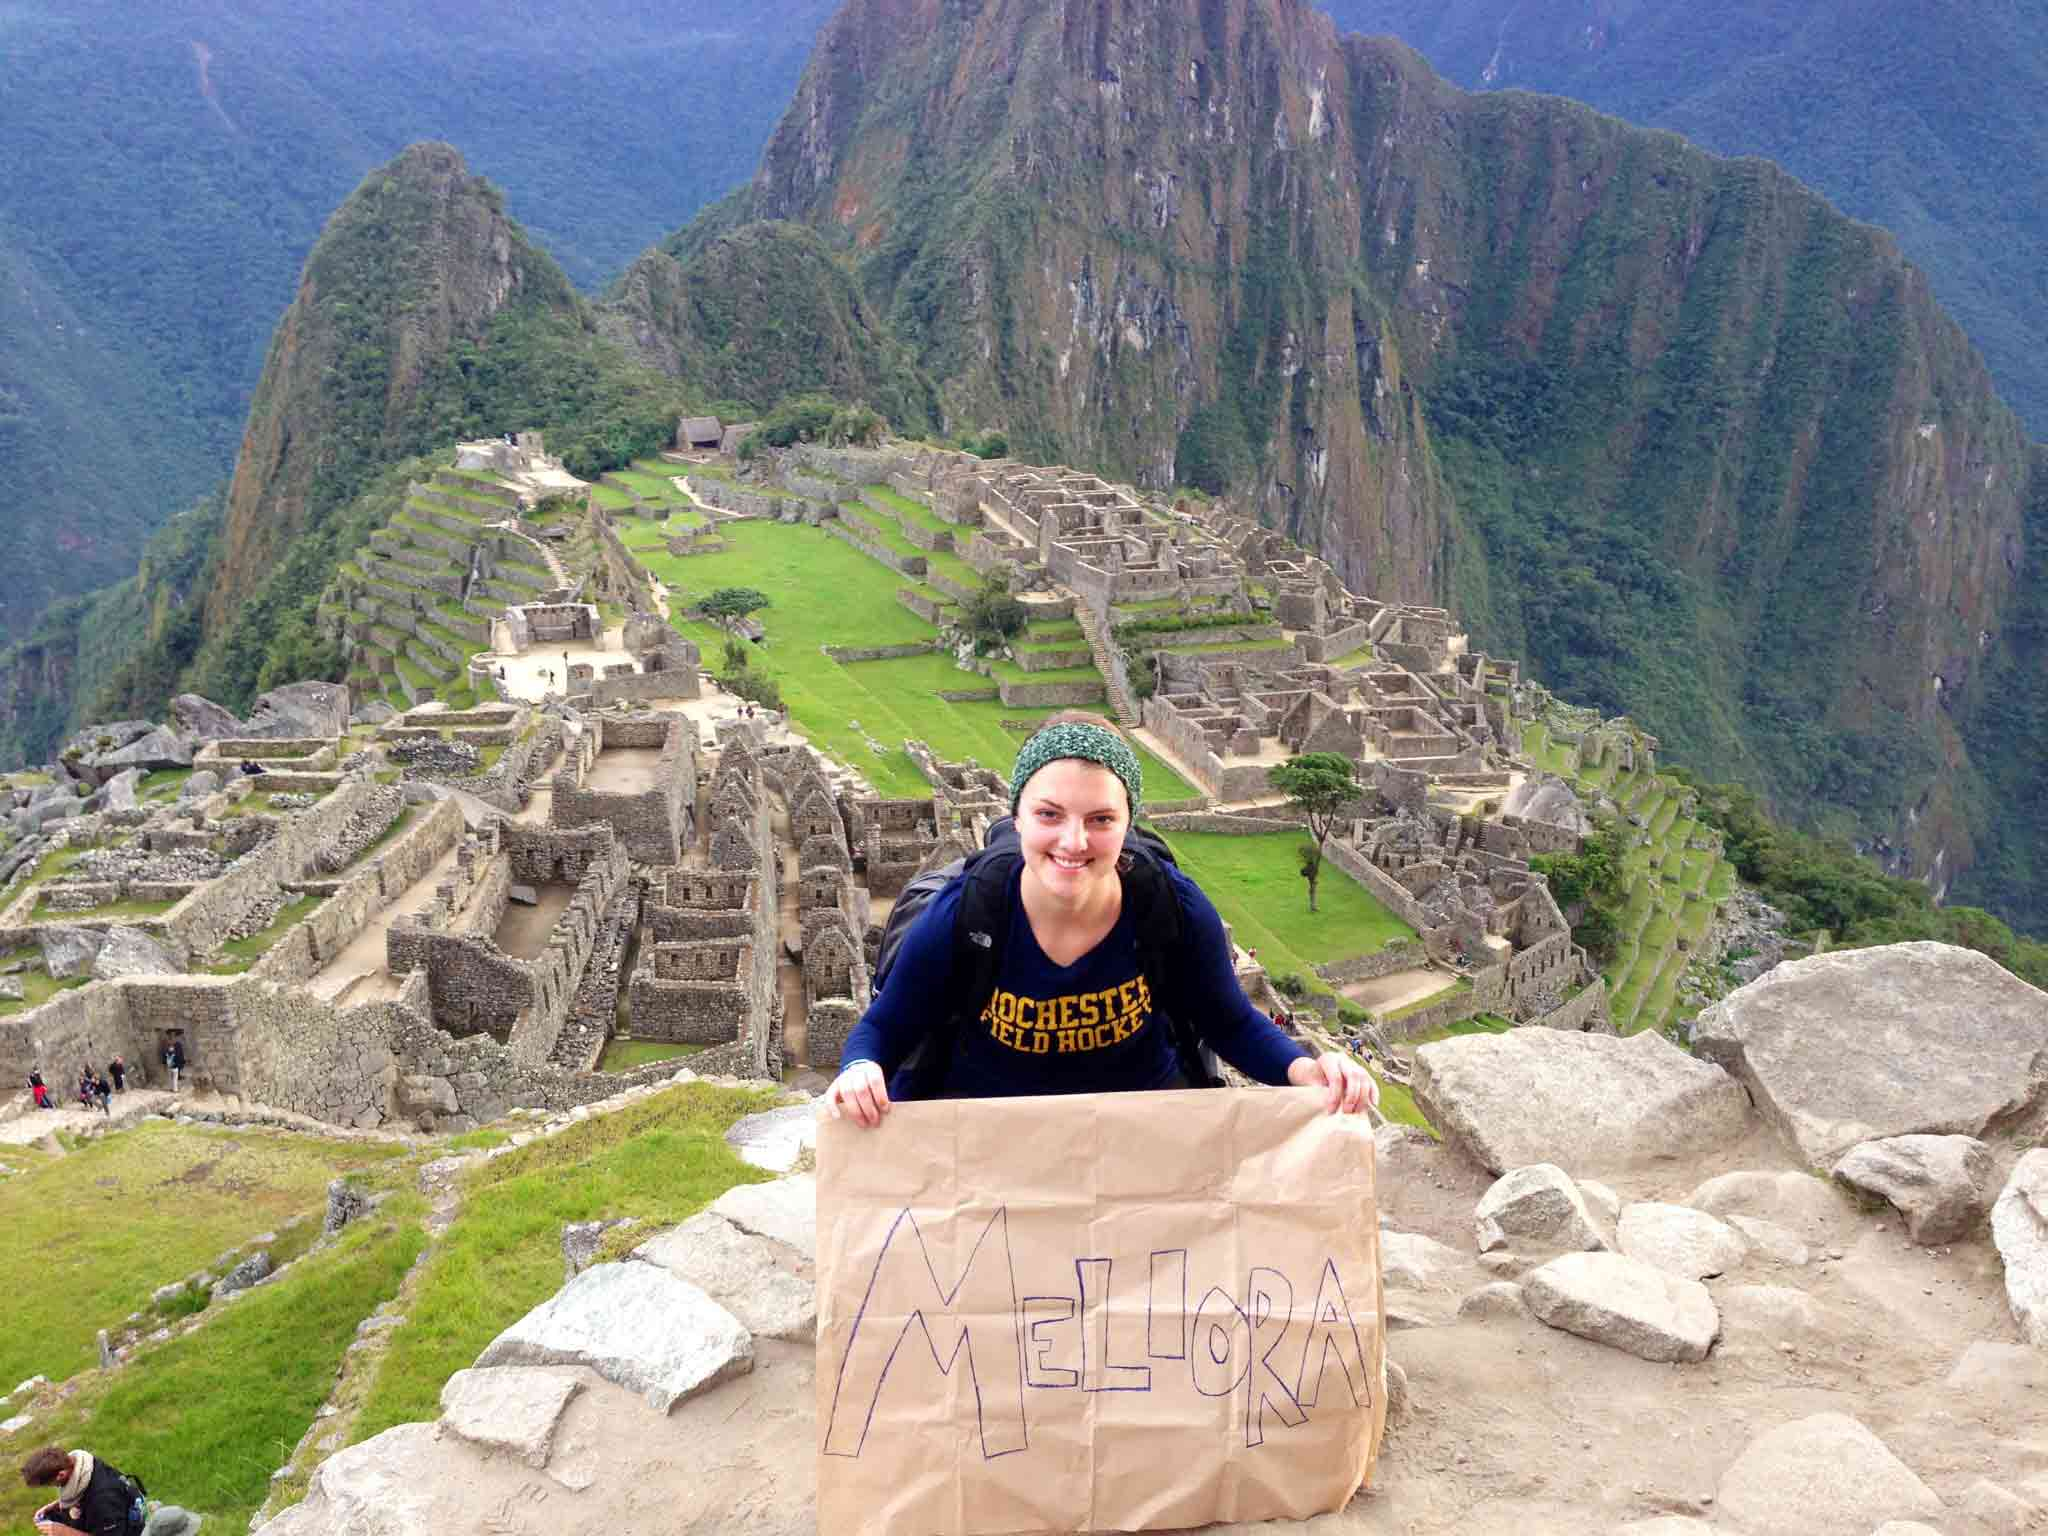 student holds sign saying MELIORA on top of Machu Picchu